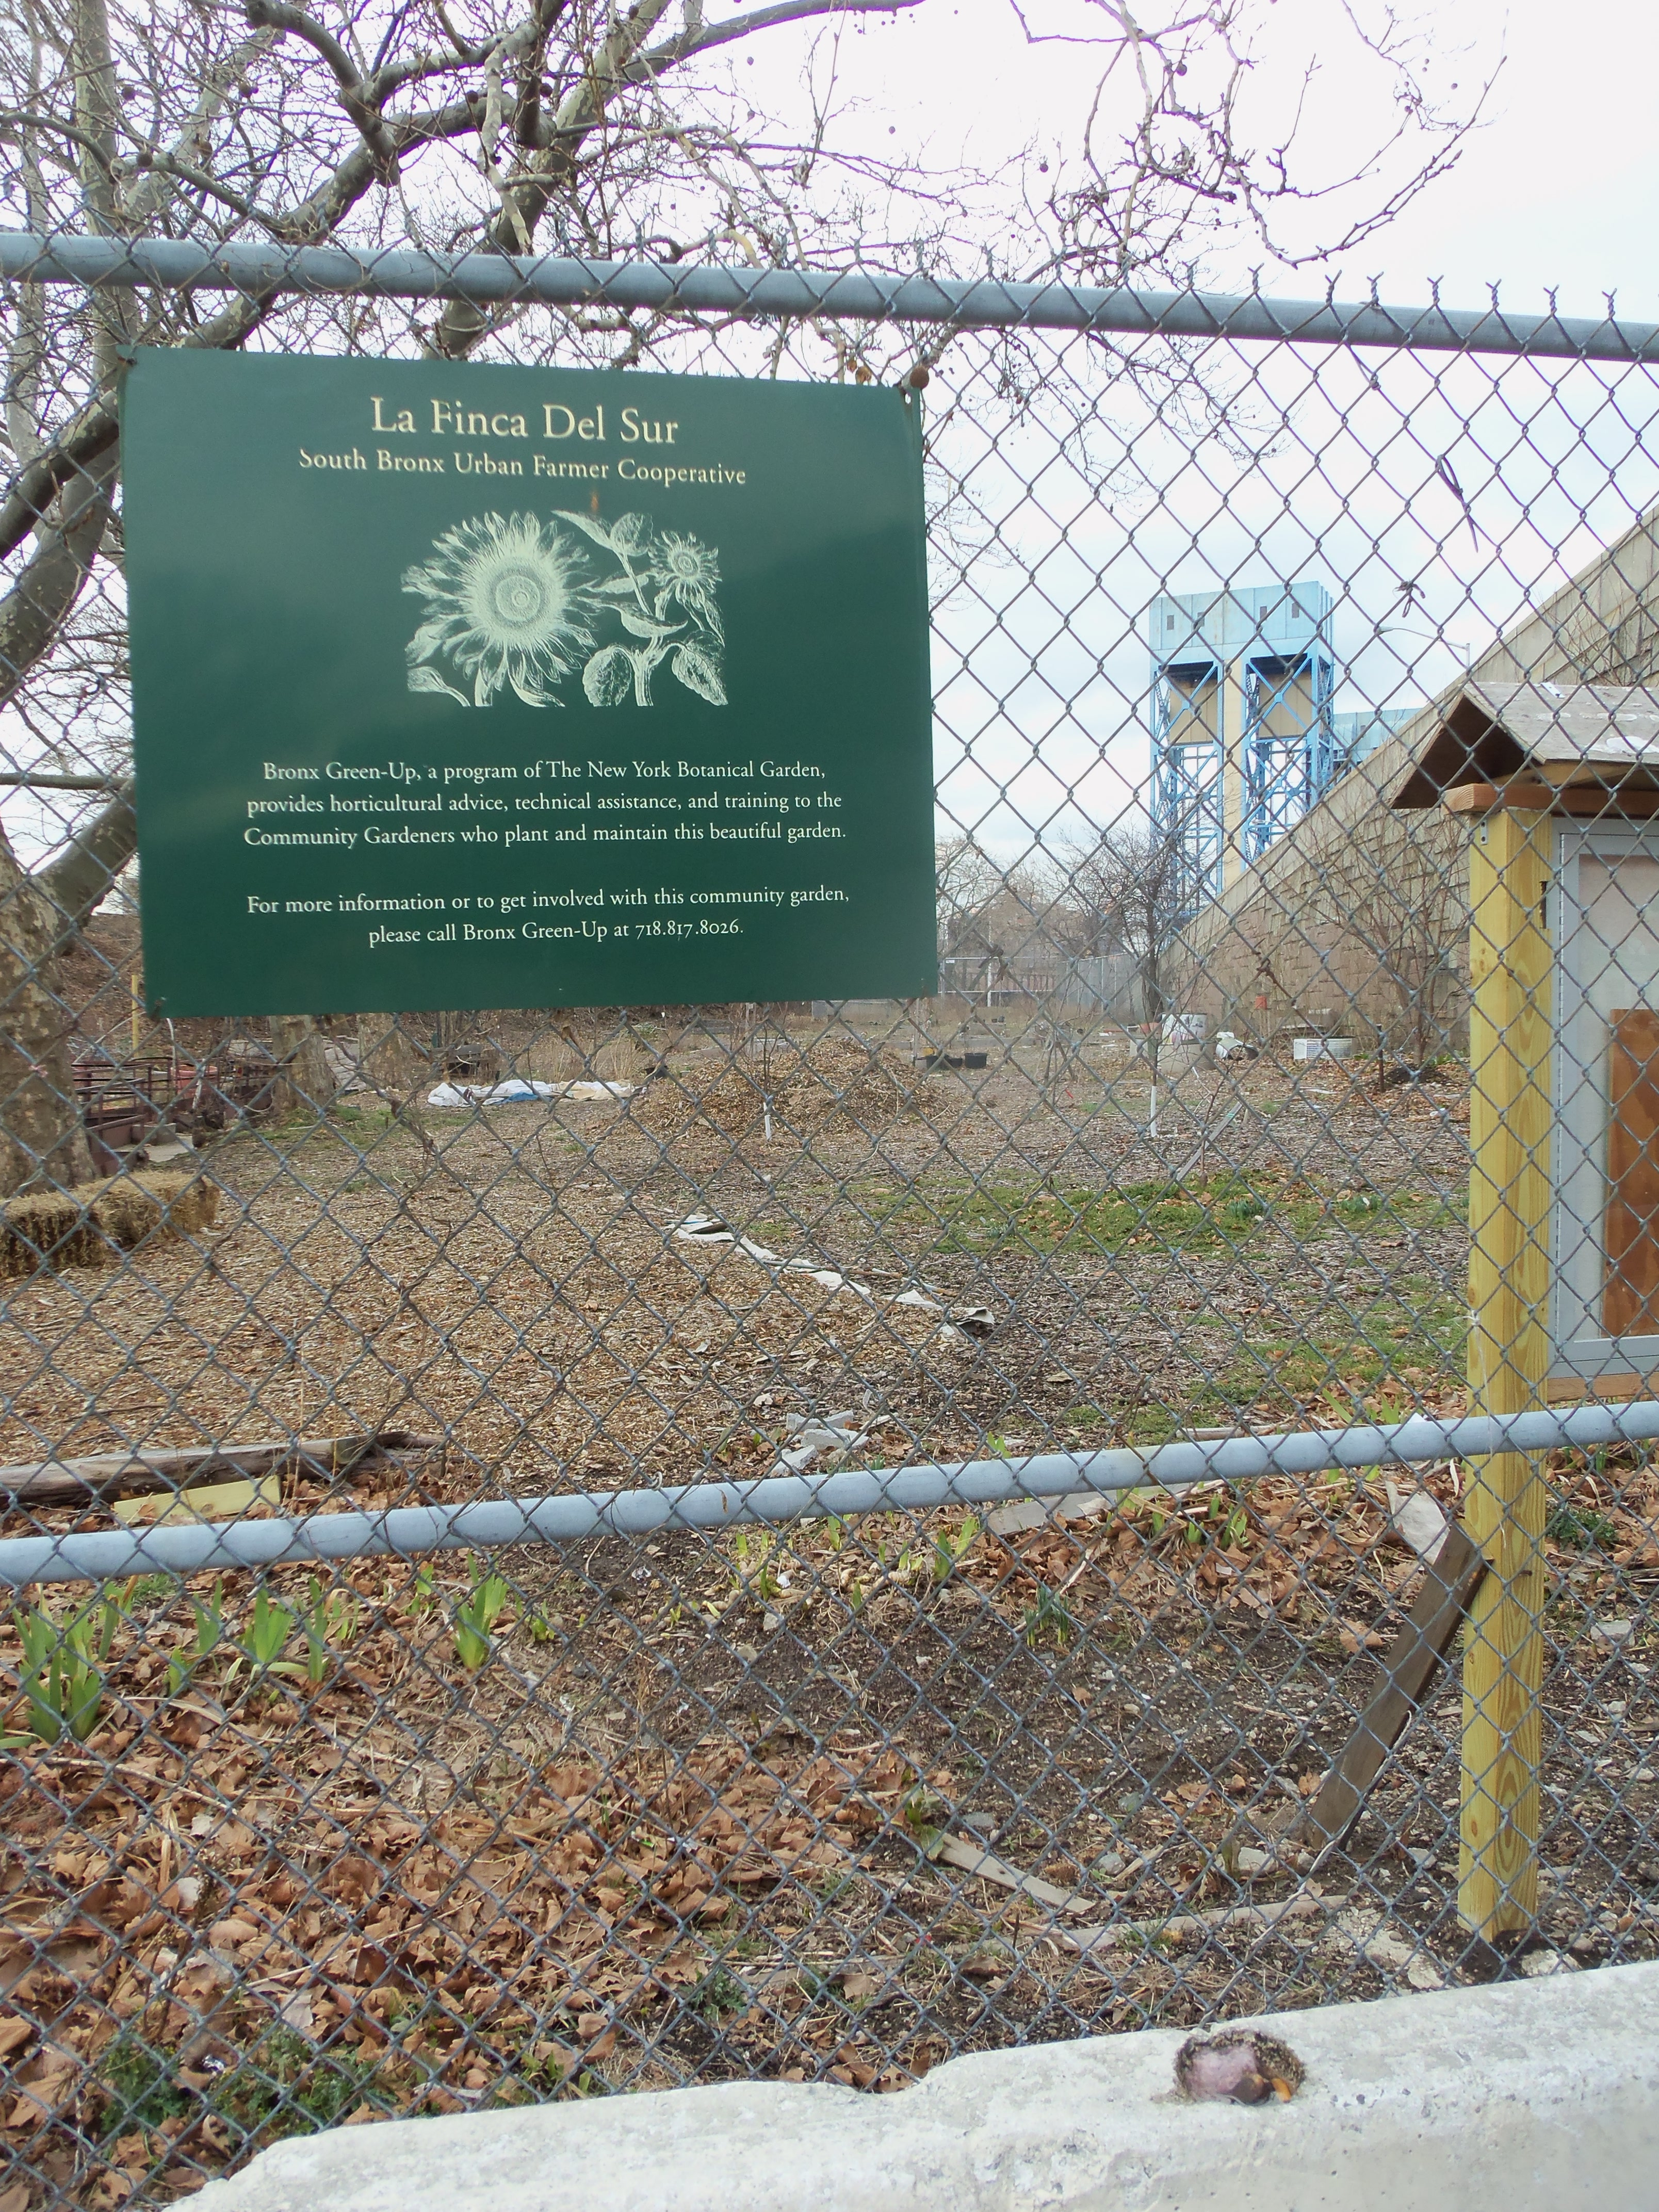 La Finca del Sur, South Bronx community garden